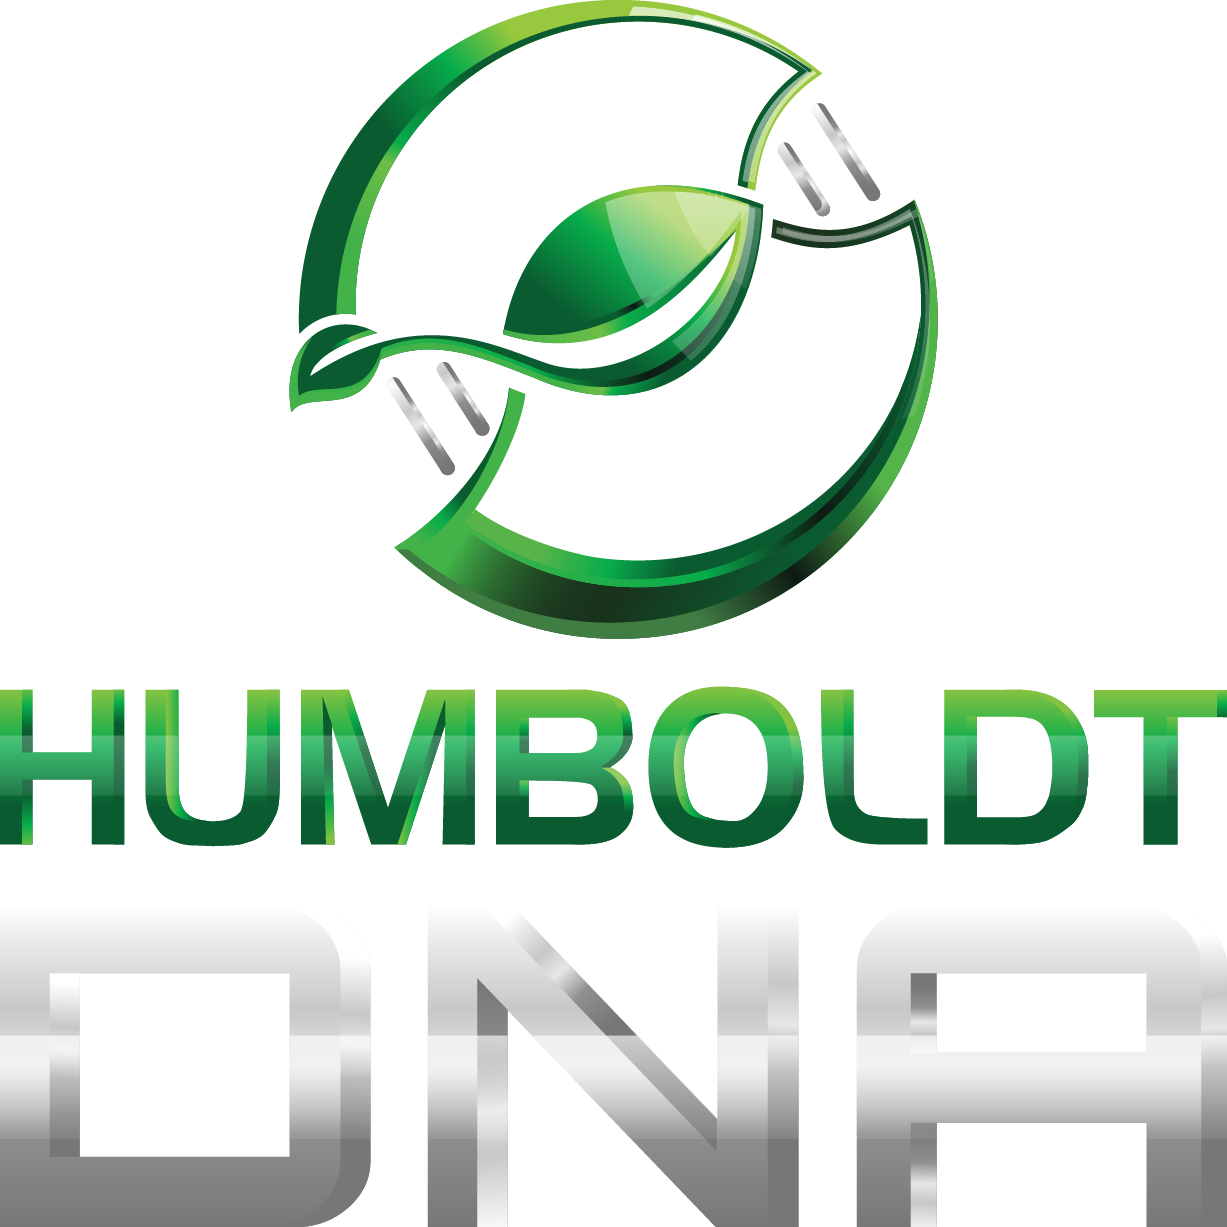 Make a logo for a new Humboldt County Marijauna biotech firm specializing in tissue culture and DNA.